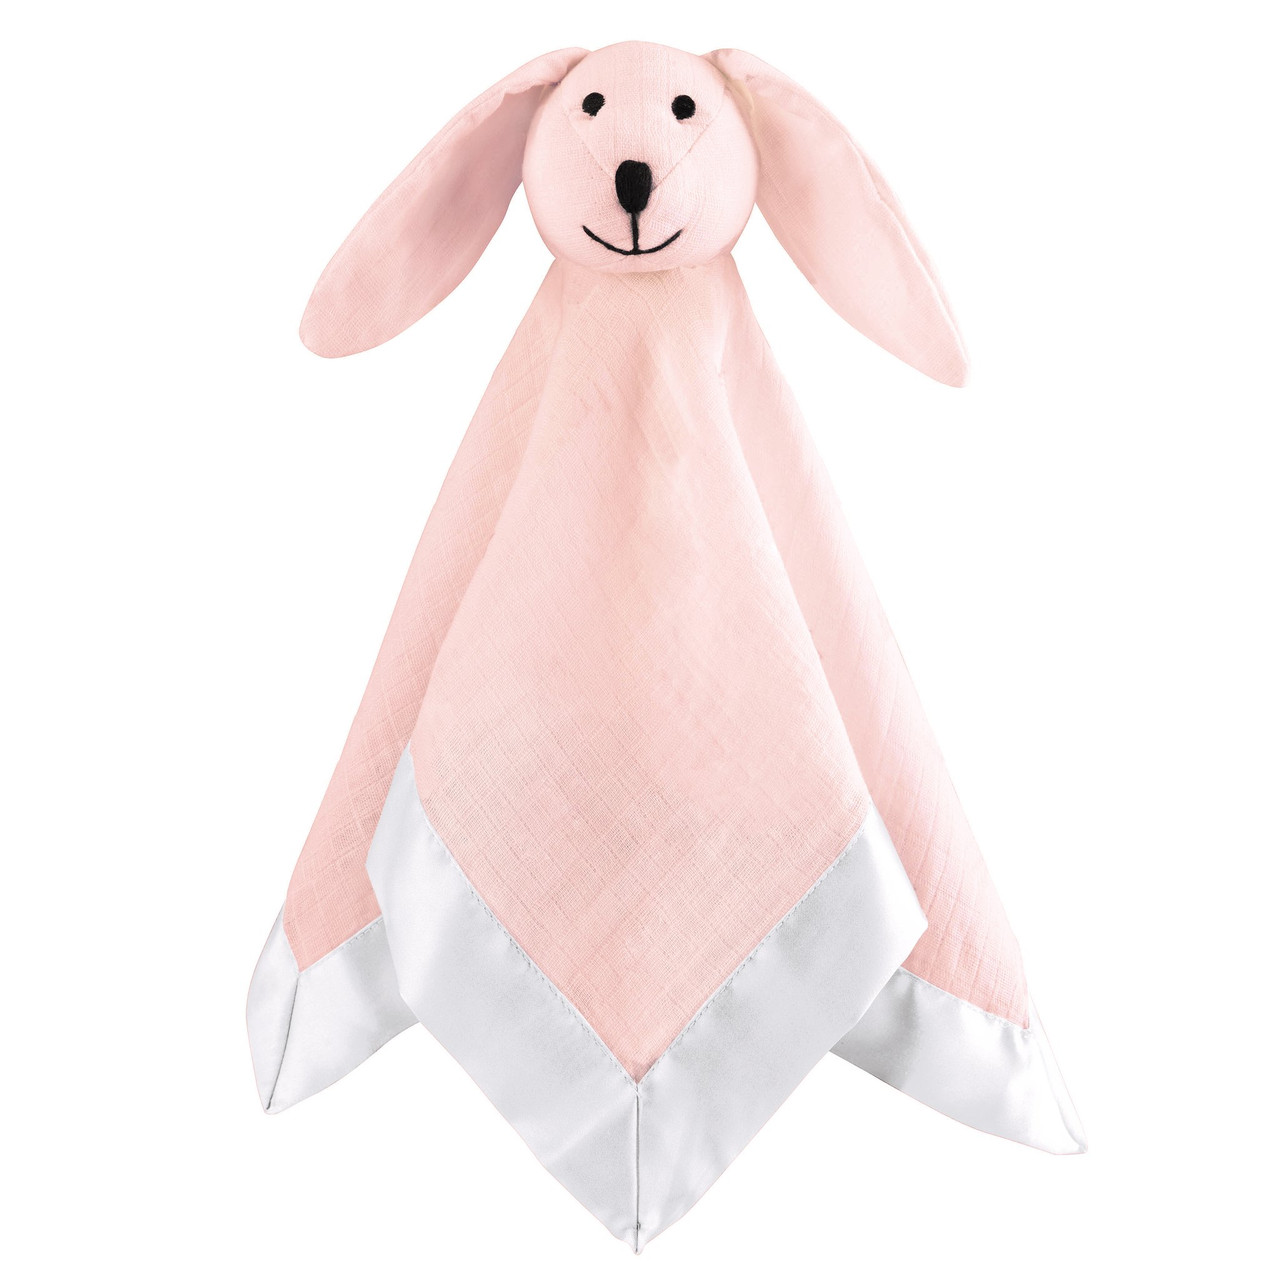 Aden + Anais Muslin Security Blanket Musy Mate Lovey - Solid Pink